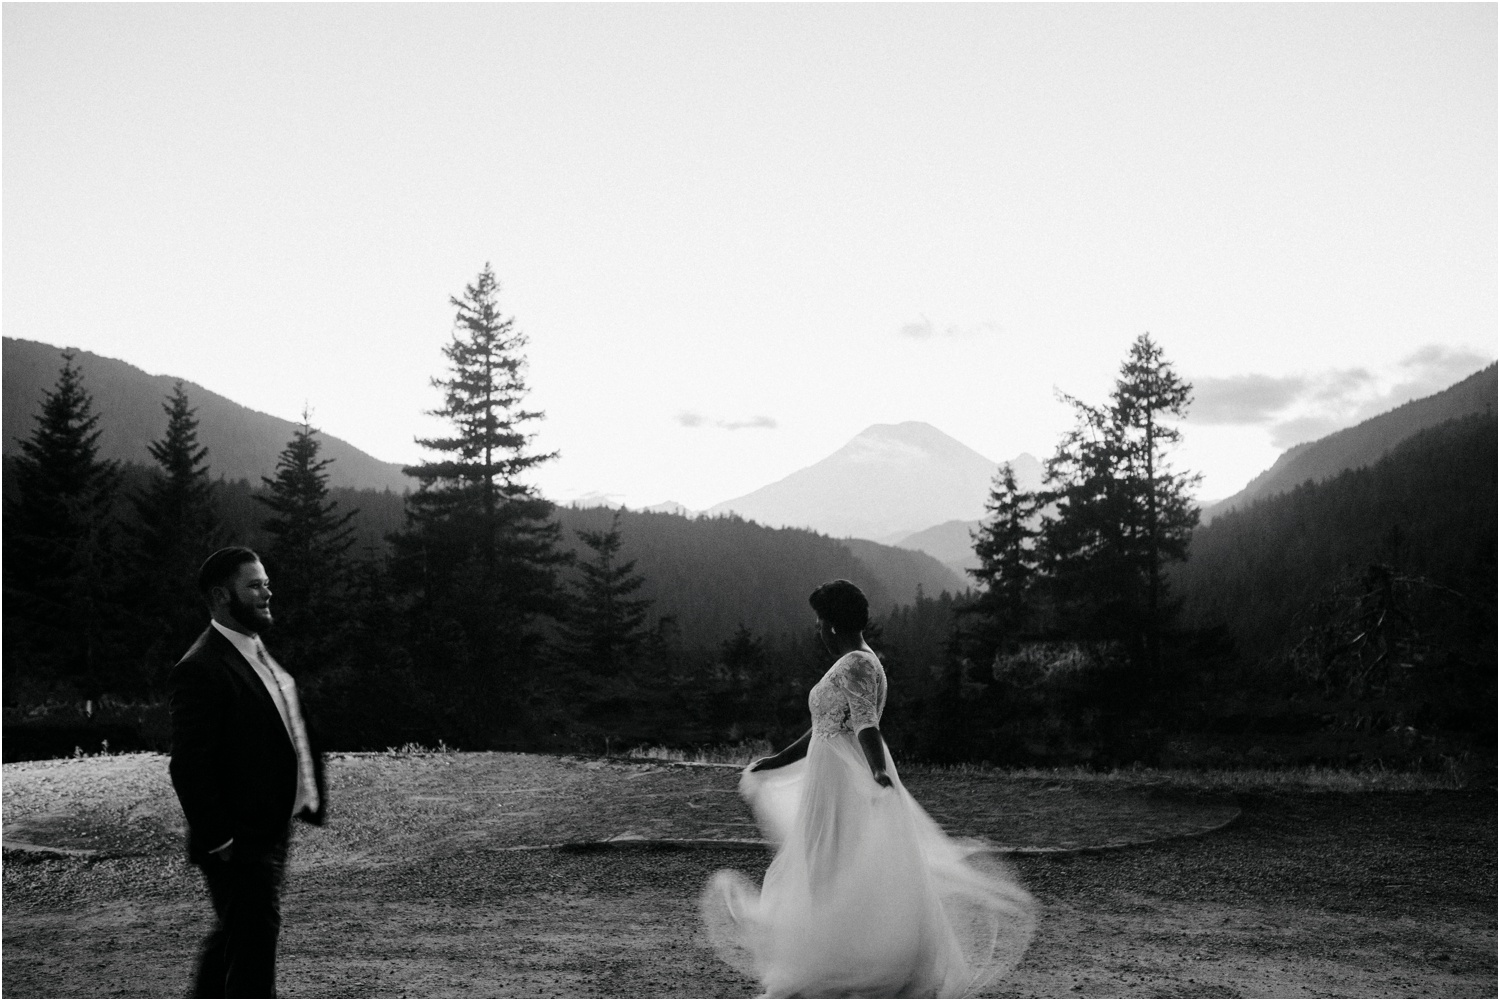 lovestoriesco-amber-phinisee-seattle-mount-rainier-elopement_0100.jpg